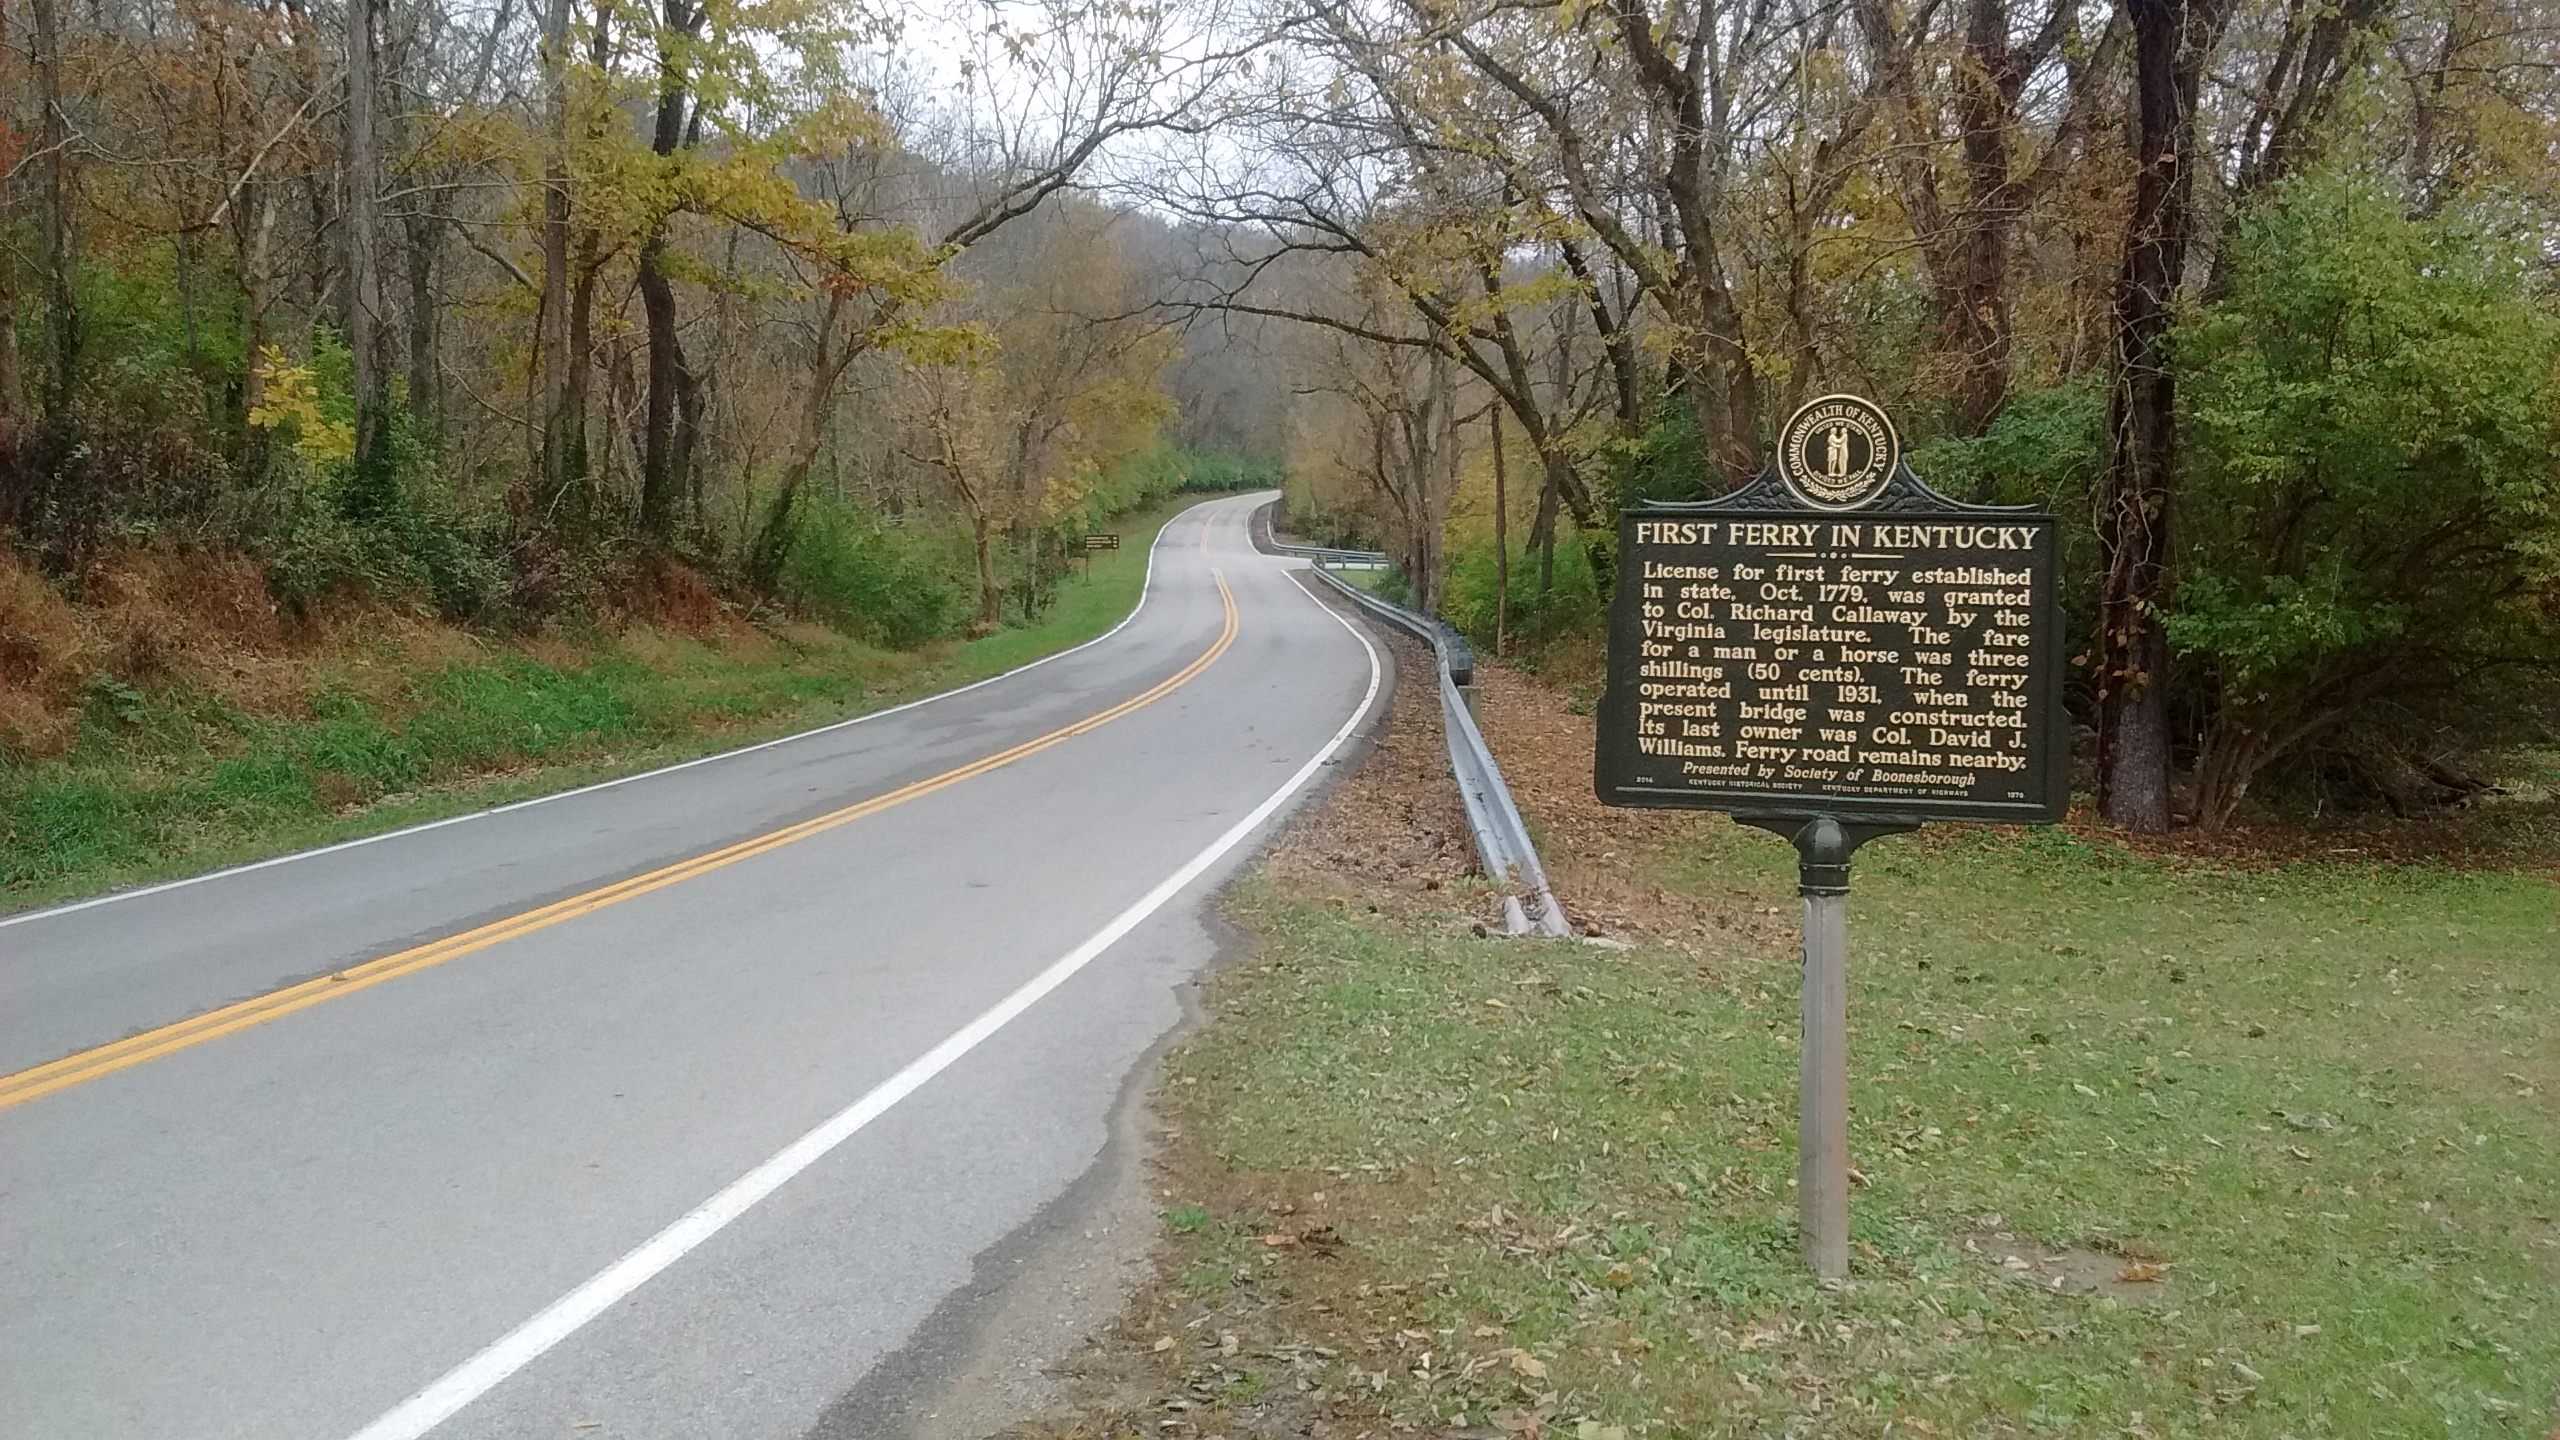 First Ferry in Kentucky Marker